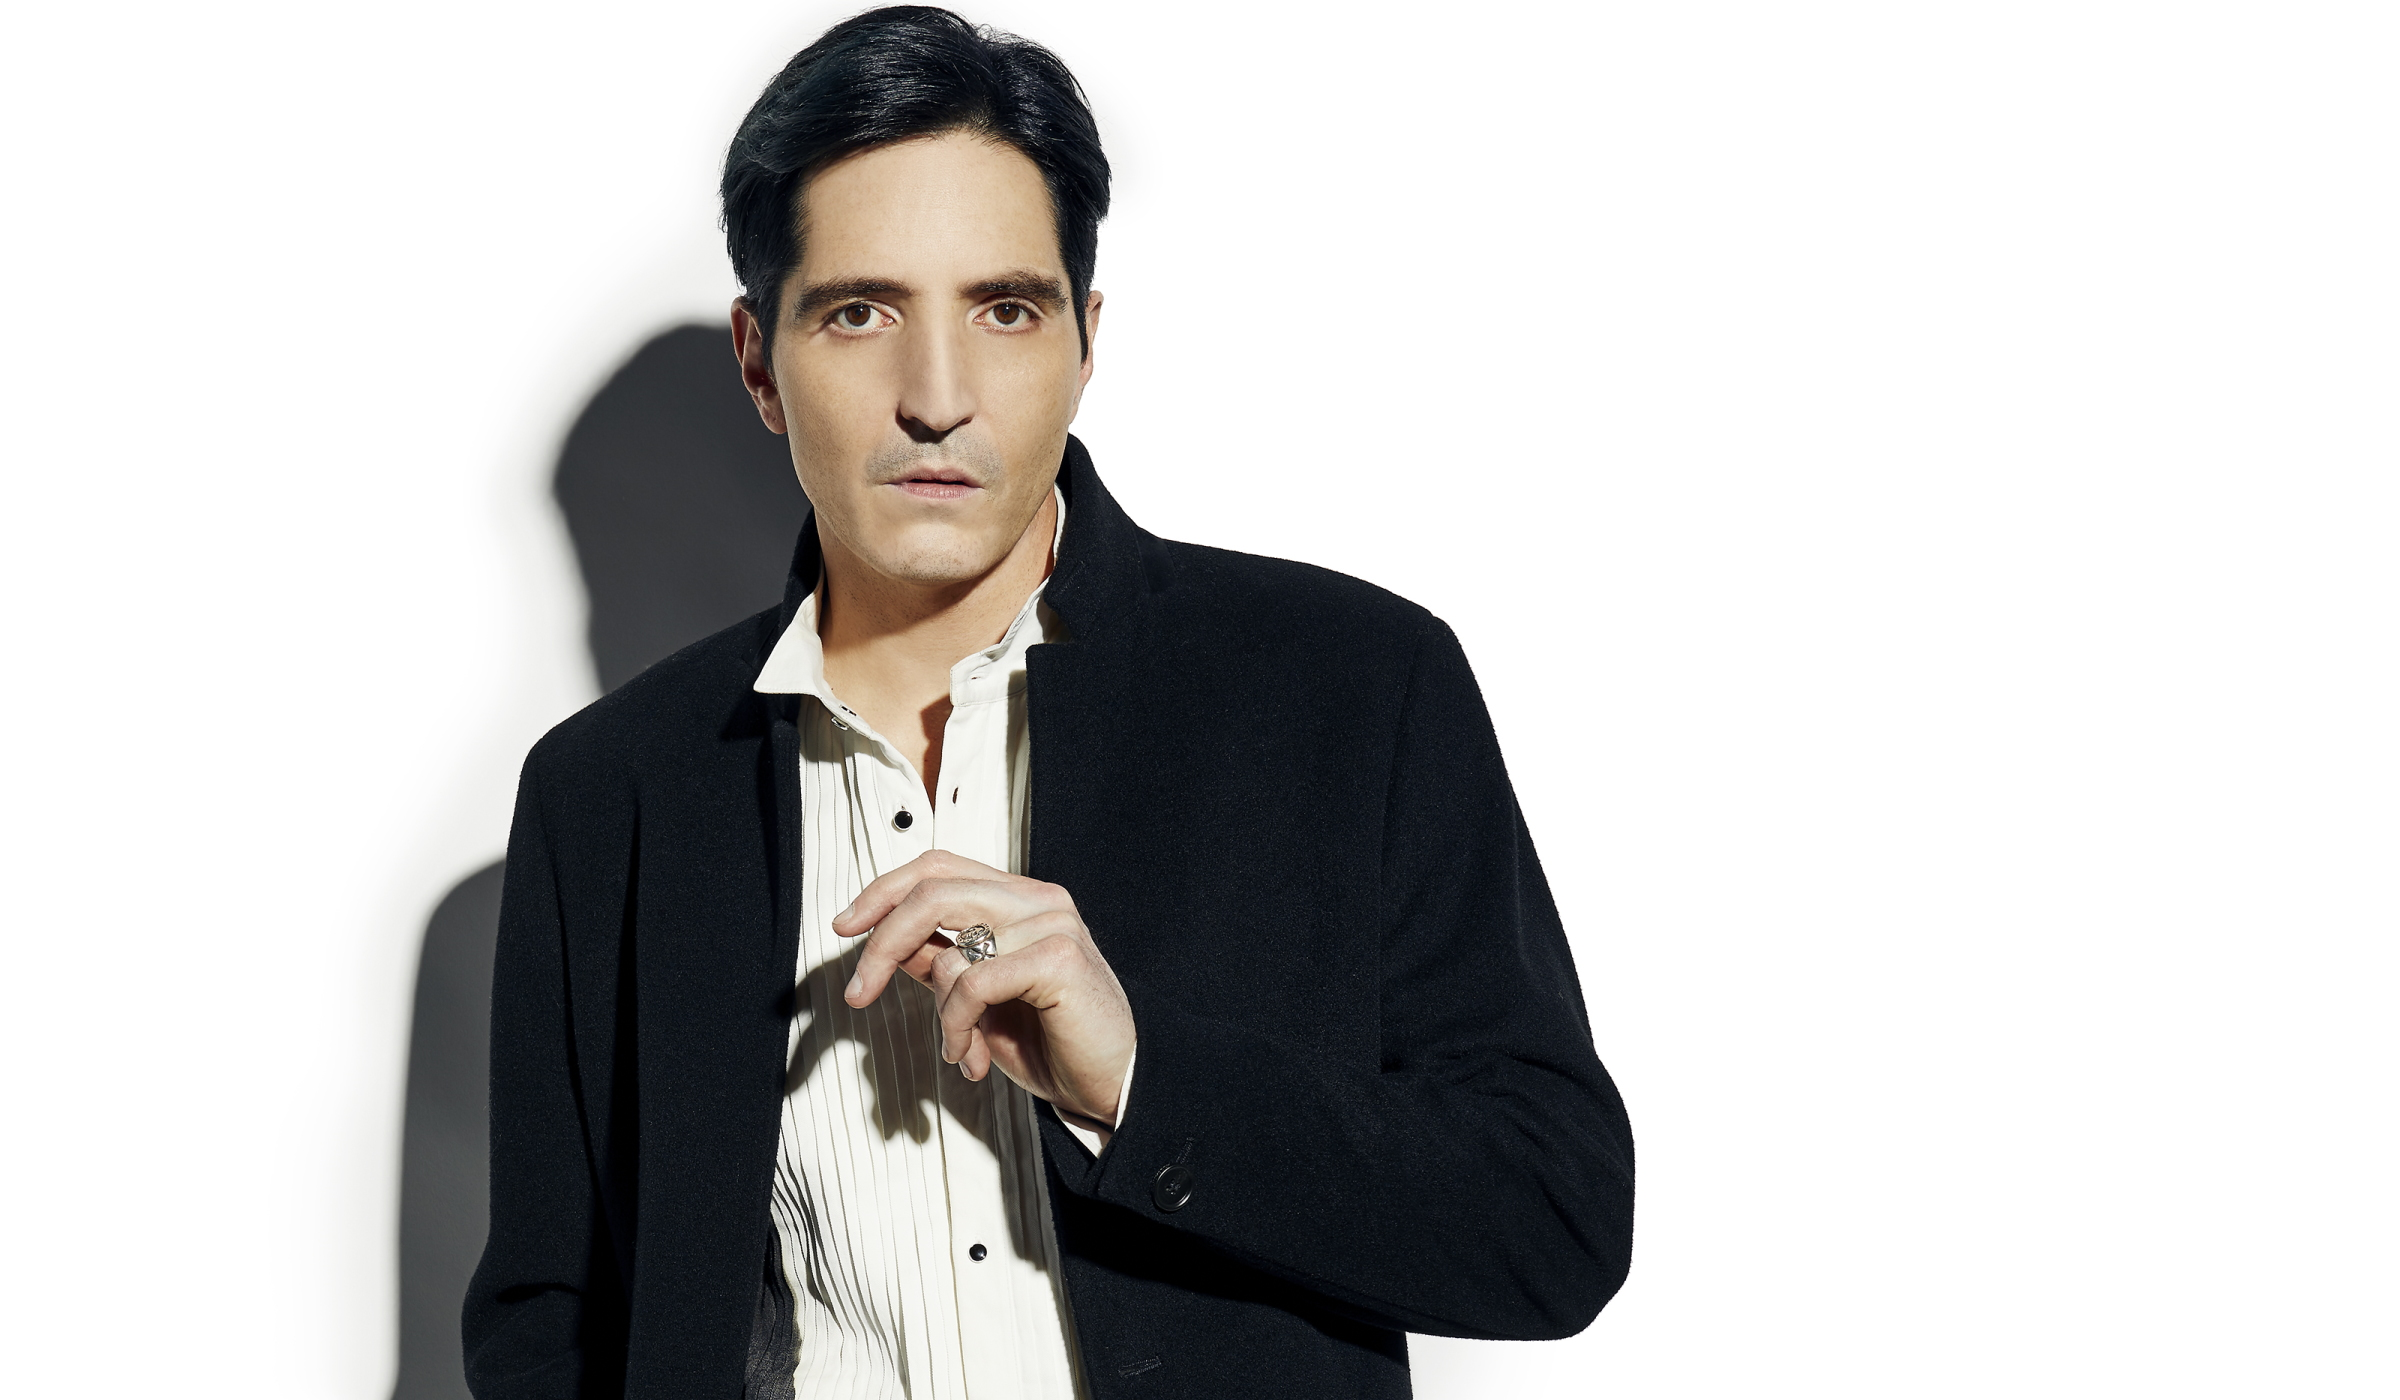 Connecting The Polka-Dots: An Interview With David Dastmalchian